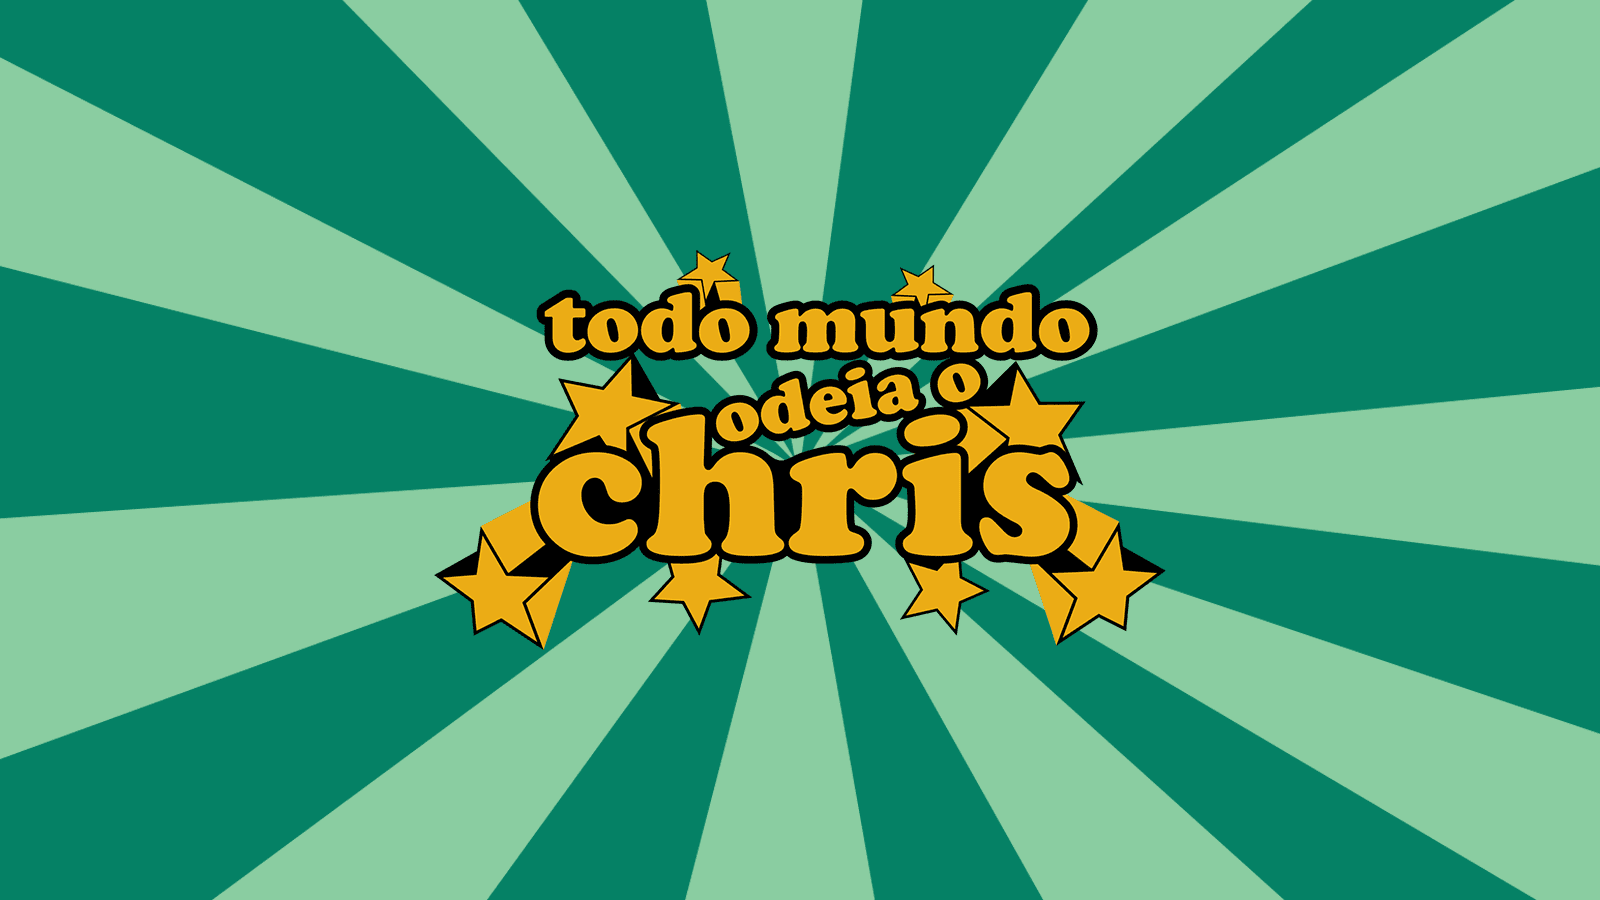 Msicas que tocam na srie todo mundo odeia o chris everybody hates imagem todo mundo odeia o chris everybody hates chrismatheus produes adaptao do logo original fandeluxe Gallery